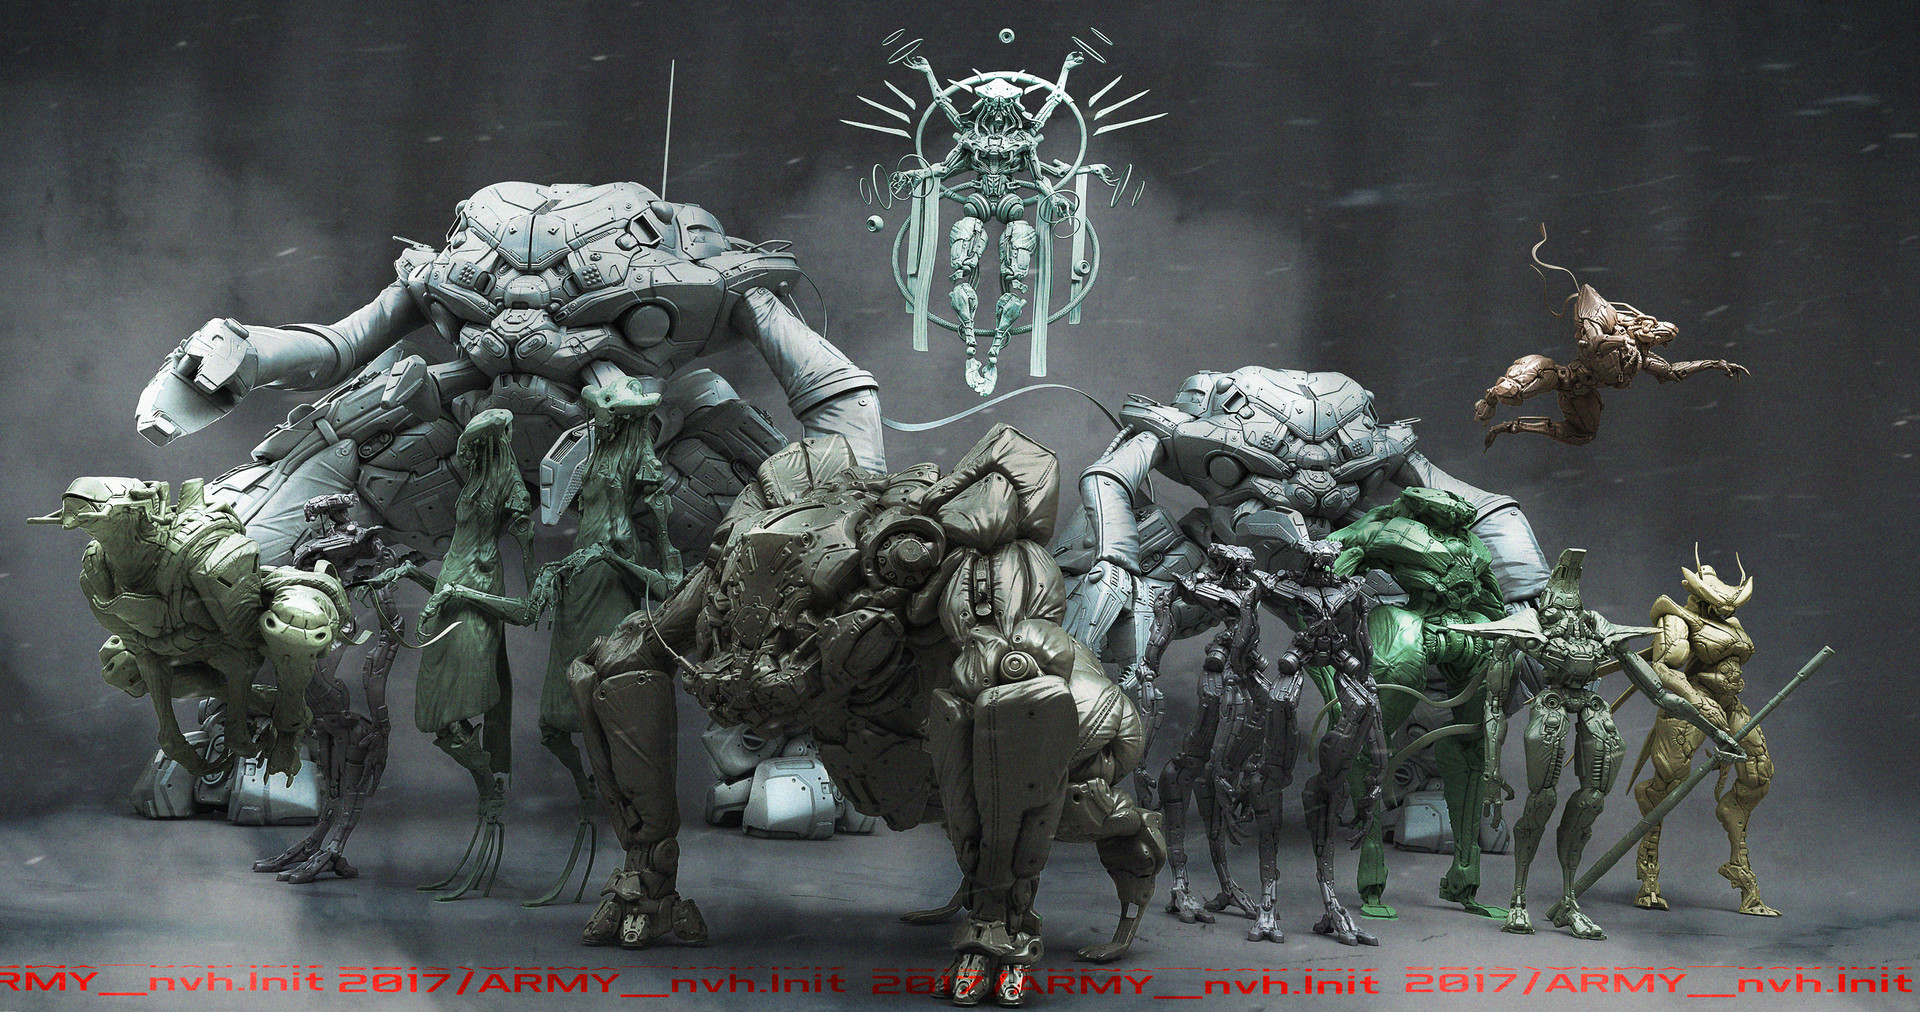 Mickael lelievre army bots